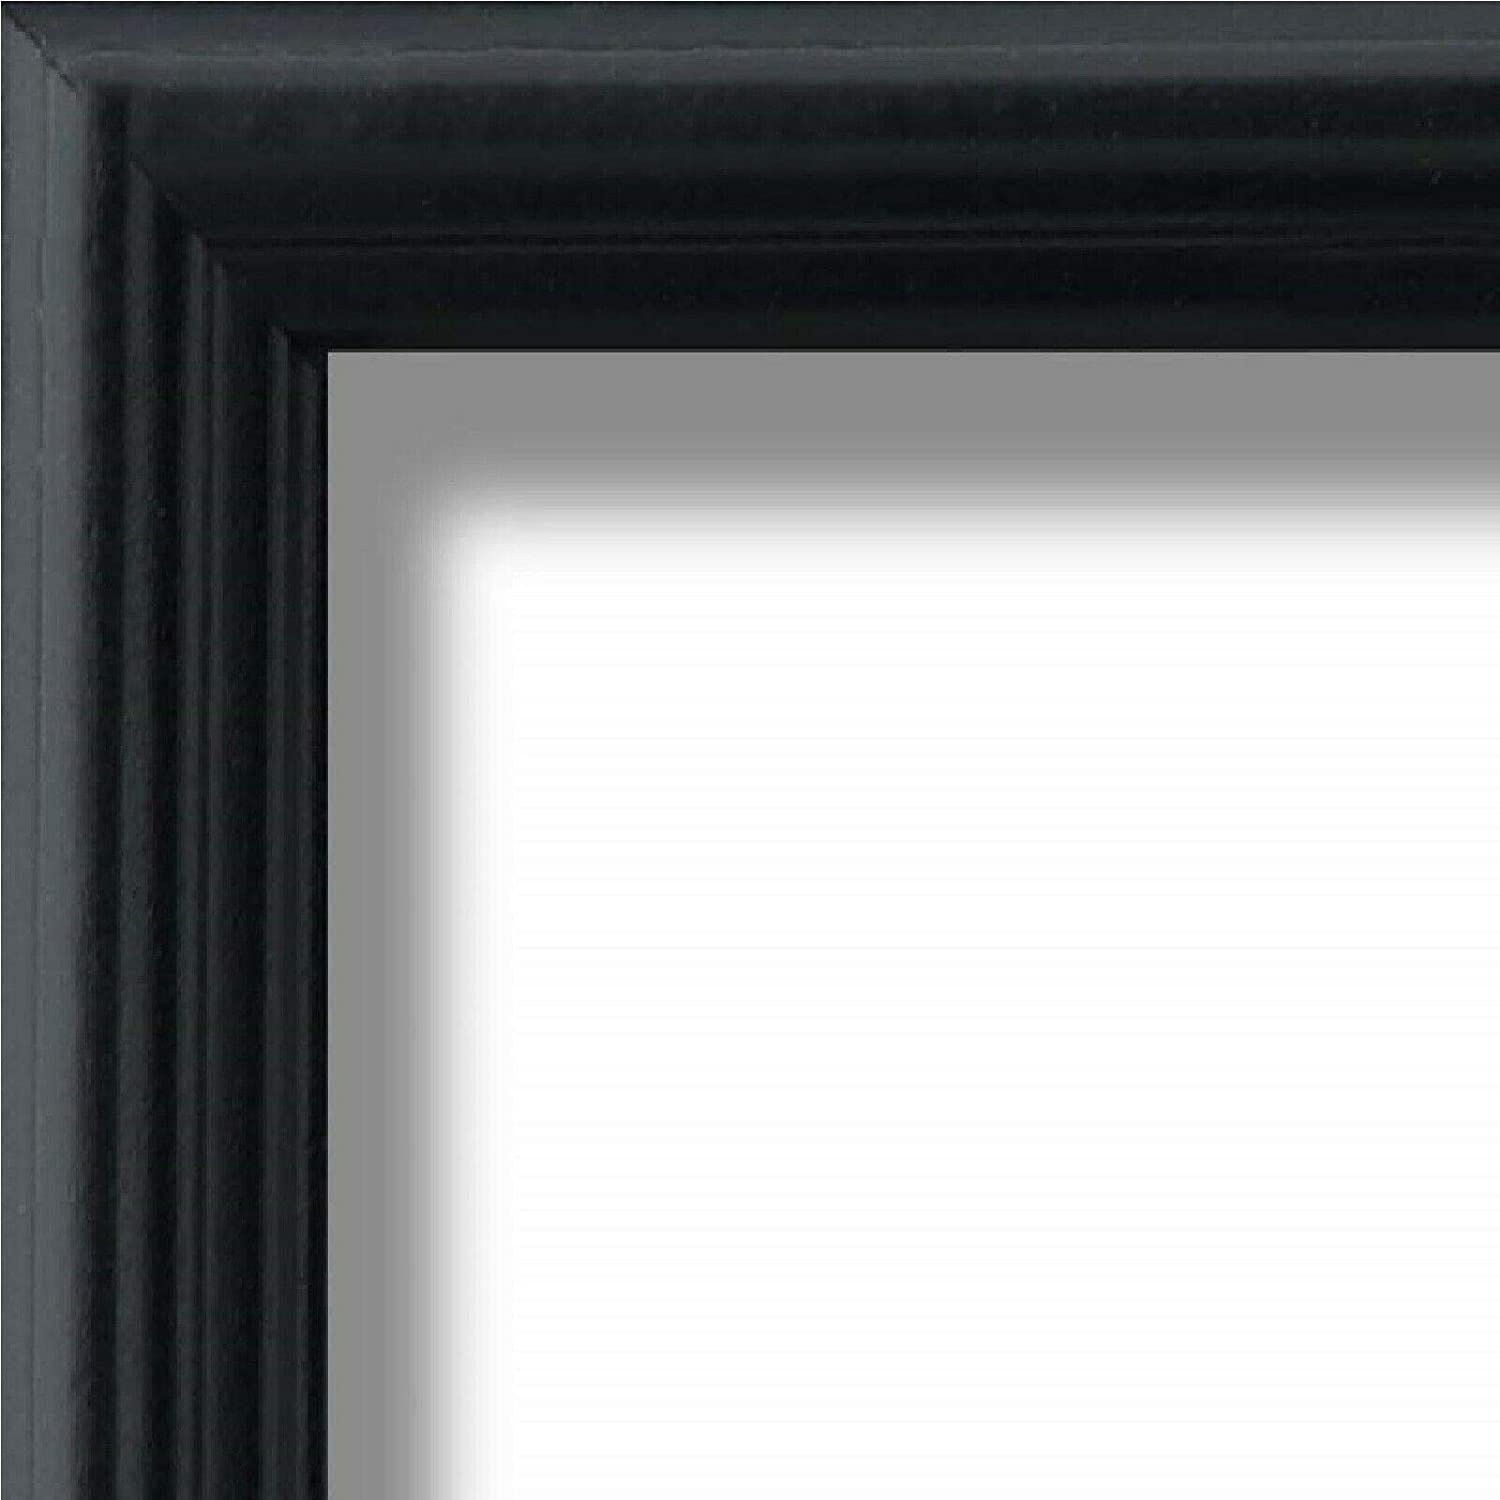 US Art shopping Deluxe Frames 18x28 Traditional Style Inch Wide Black .75 Thin